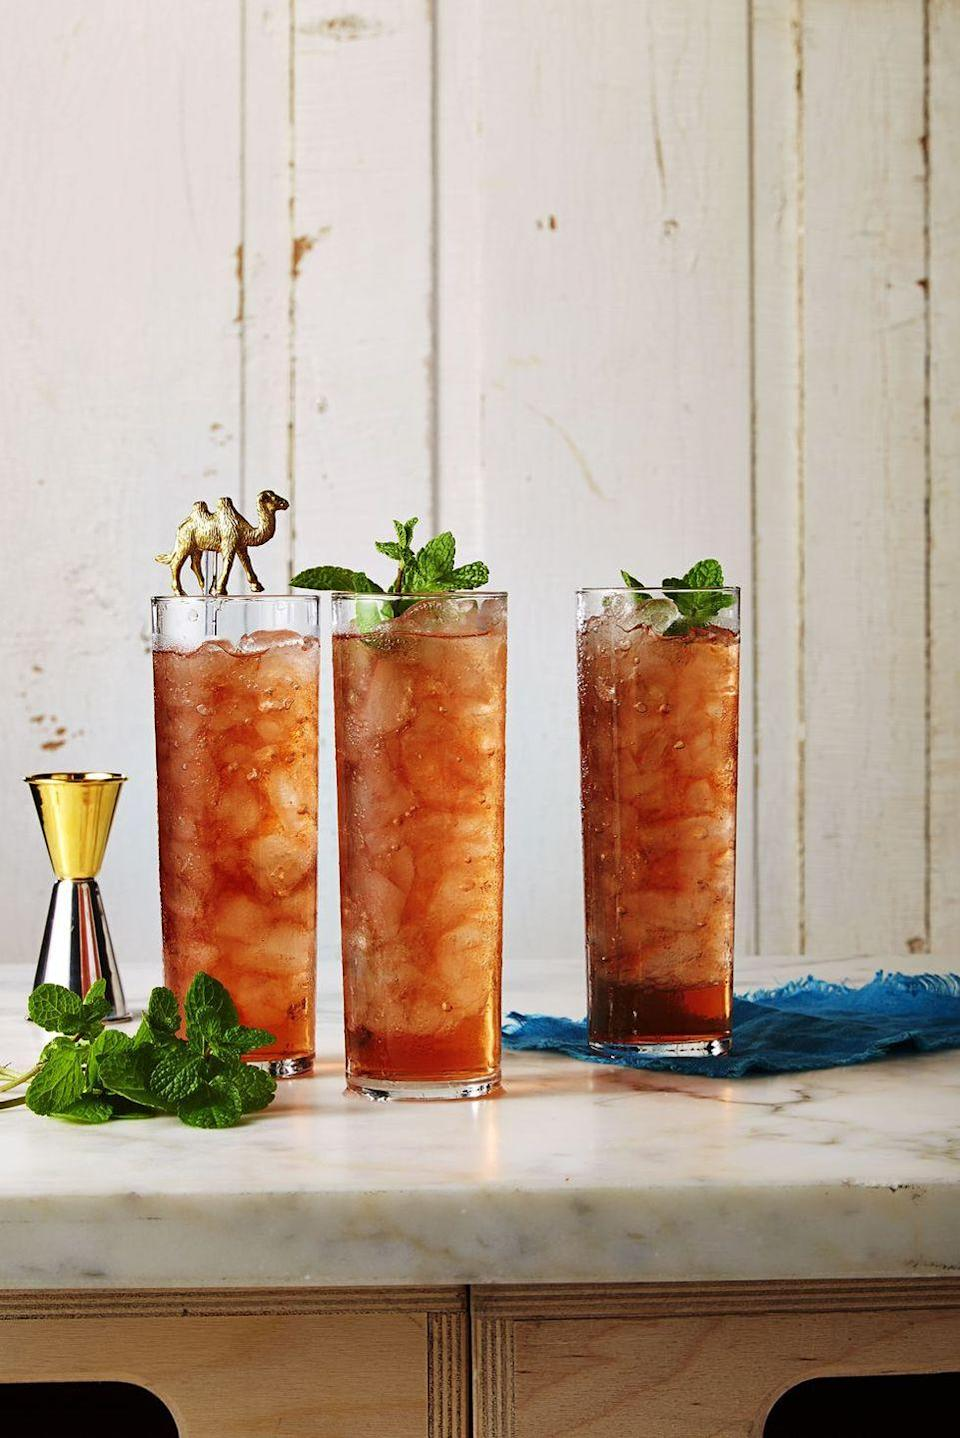 """<p>Wash down your plate of barbecue fixins' with this boozy Southern staple. </p><p><em><a href=""""https://www.goodhousekeeping.com/food-recipes/a37455/peach-sweet-tea-with-bourbon-recipe/"""" rel=""""nofollow noopener"""" target=""""_blank"""" data-ylk=""""slk:Get the recipe for Peach Sweet Tea With Bourbon »"""" class=""""link rapid-noclick-resp"""">Get the recipe for Peach Sweet Tea With Bourbon »</a></em></p><p><strong>RELATED:</strong> <a href=""""https://www.goodhousekeeping.com/food-recipes/g763/summer-drink-recipes/"""" rel=""""nofollow noopener"""" target=""""_blank"""" data-ylk=""""slk:35 Summer Drink Recipes That Totally Beat the Heat"""" class=""""link rapid-noclick-resp"""">35 Summer Drink Recipes That Totally Beat the Heat</a><br></p>"""